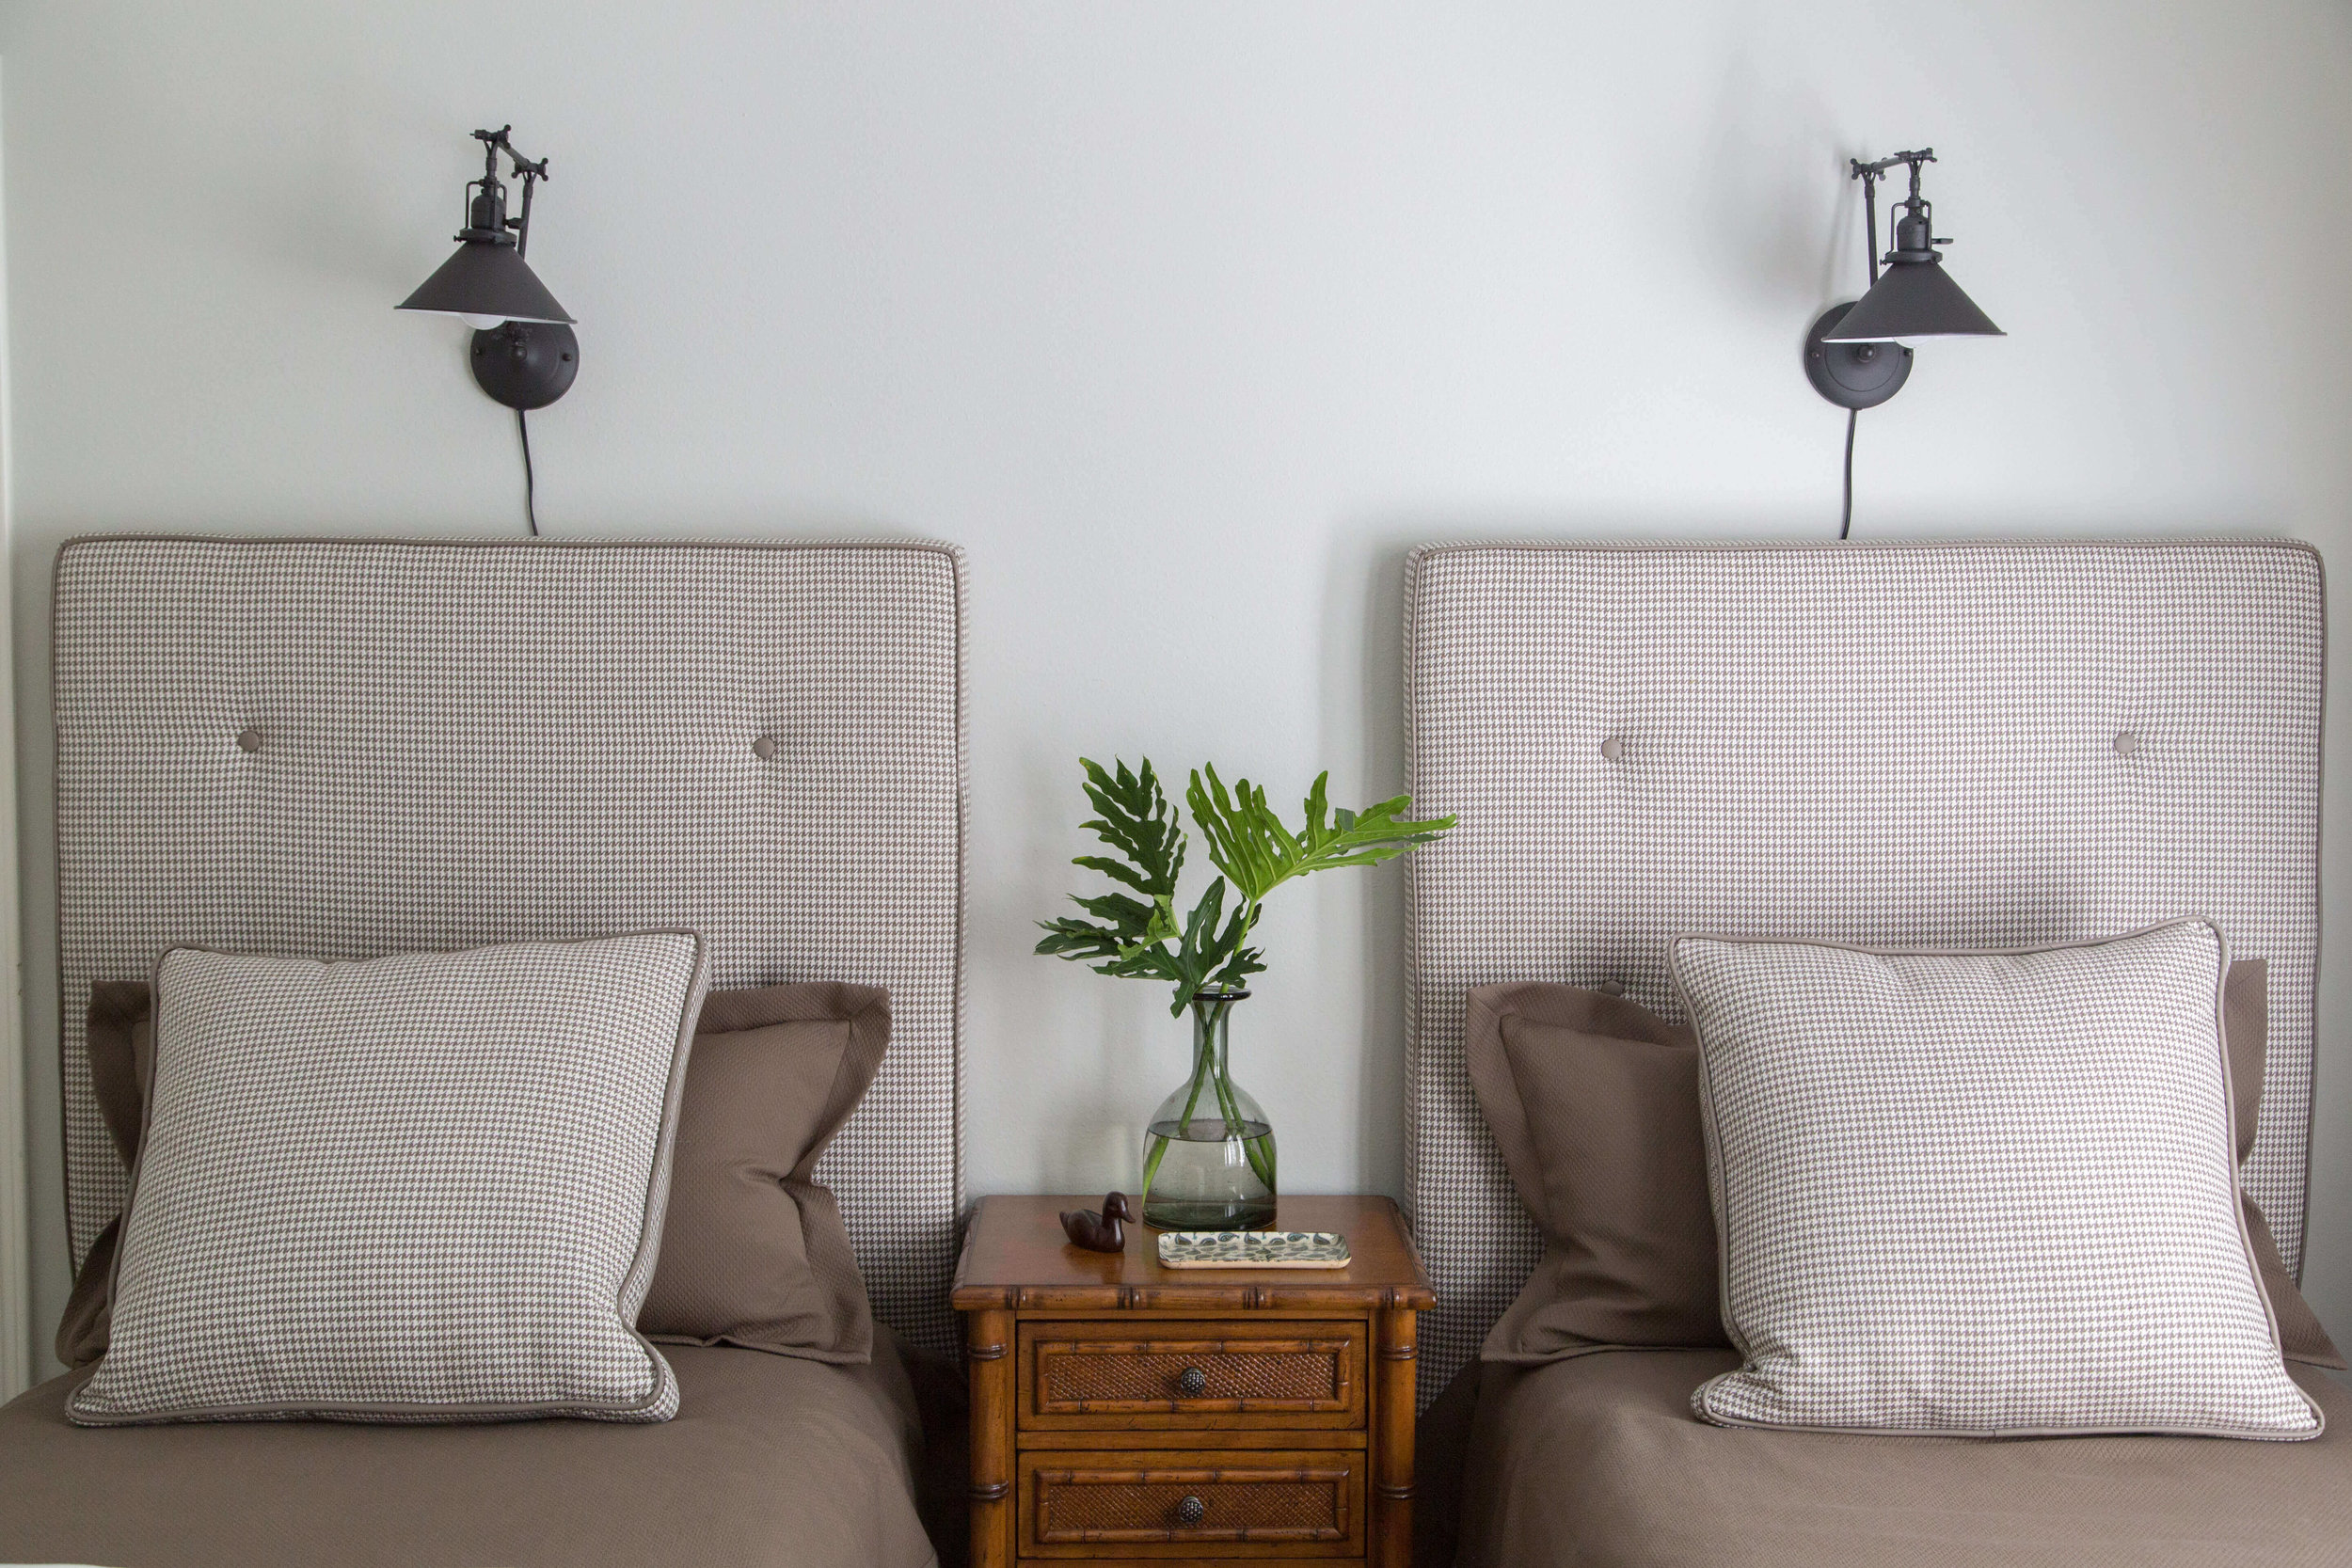 win upholstered headboards with lights above | Designer: Carla Aston